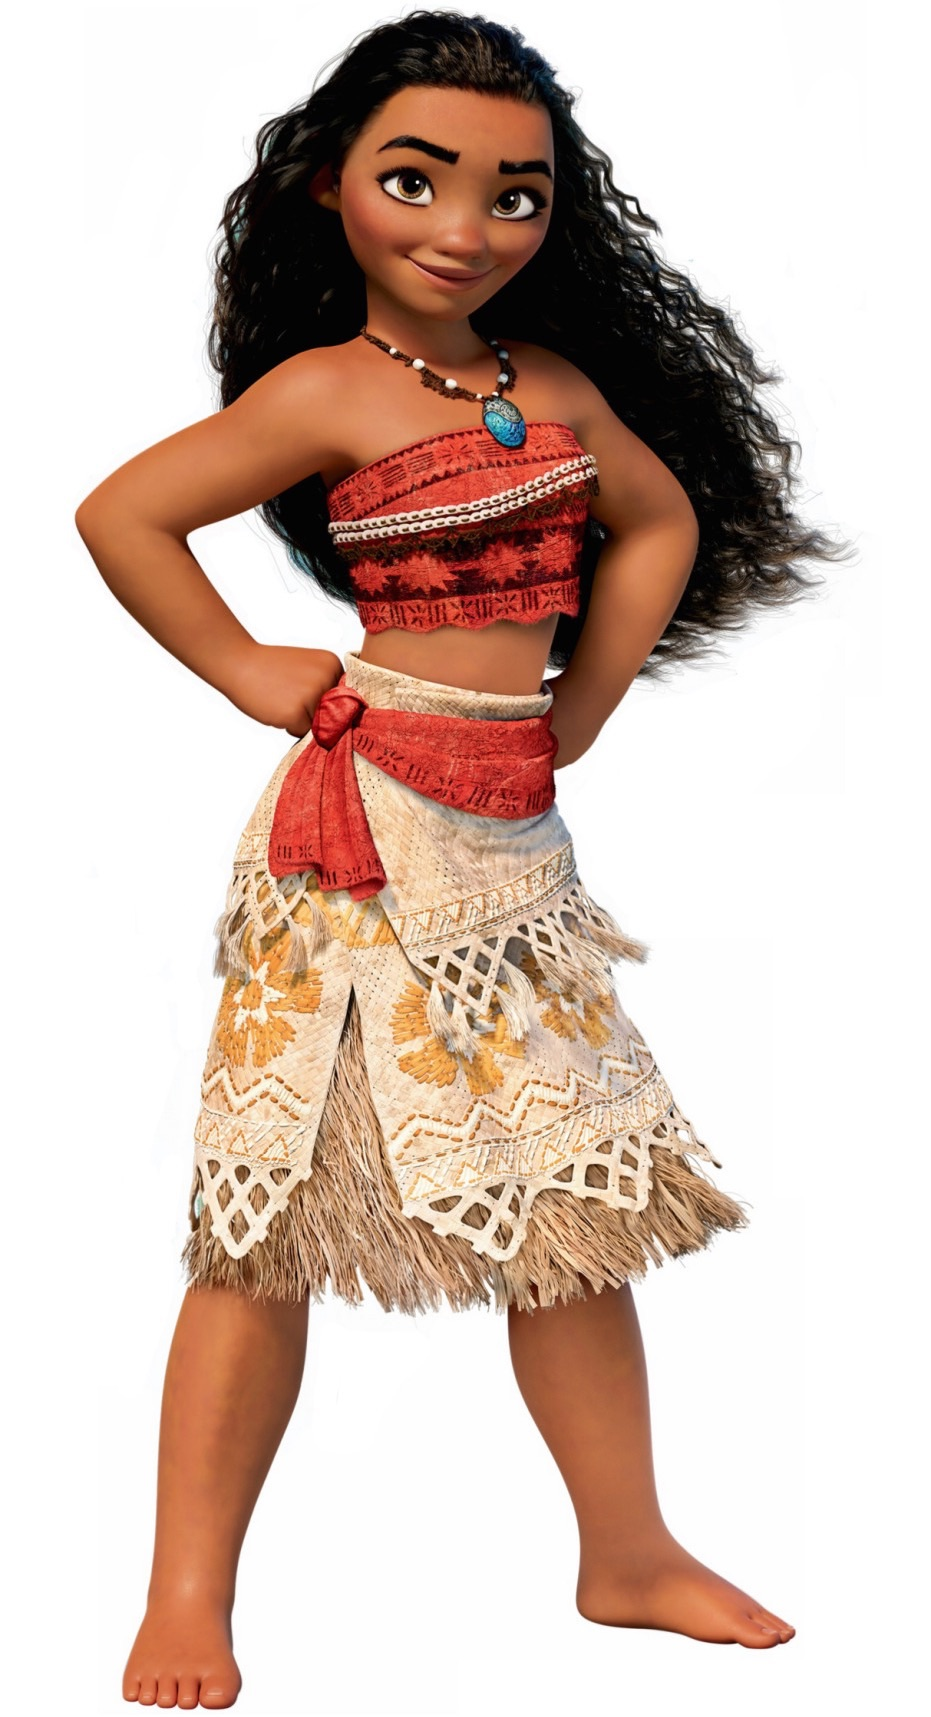 It's just a photo of Obsessed Picture of Moana